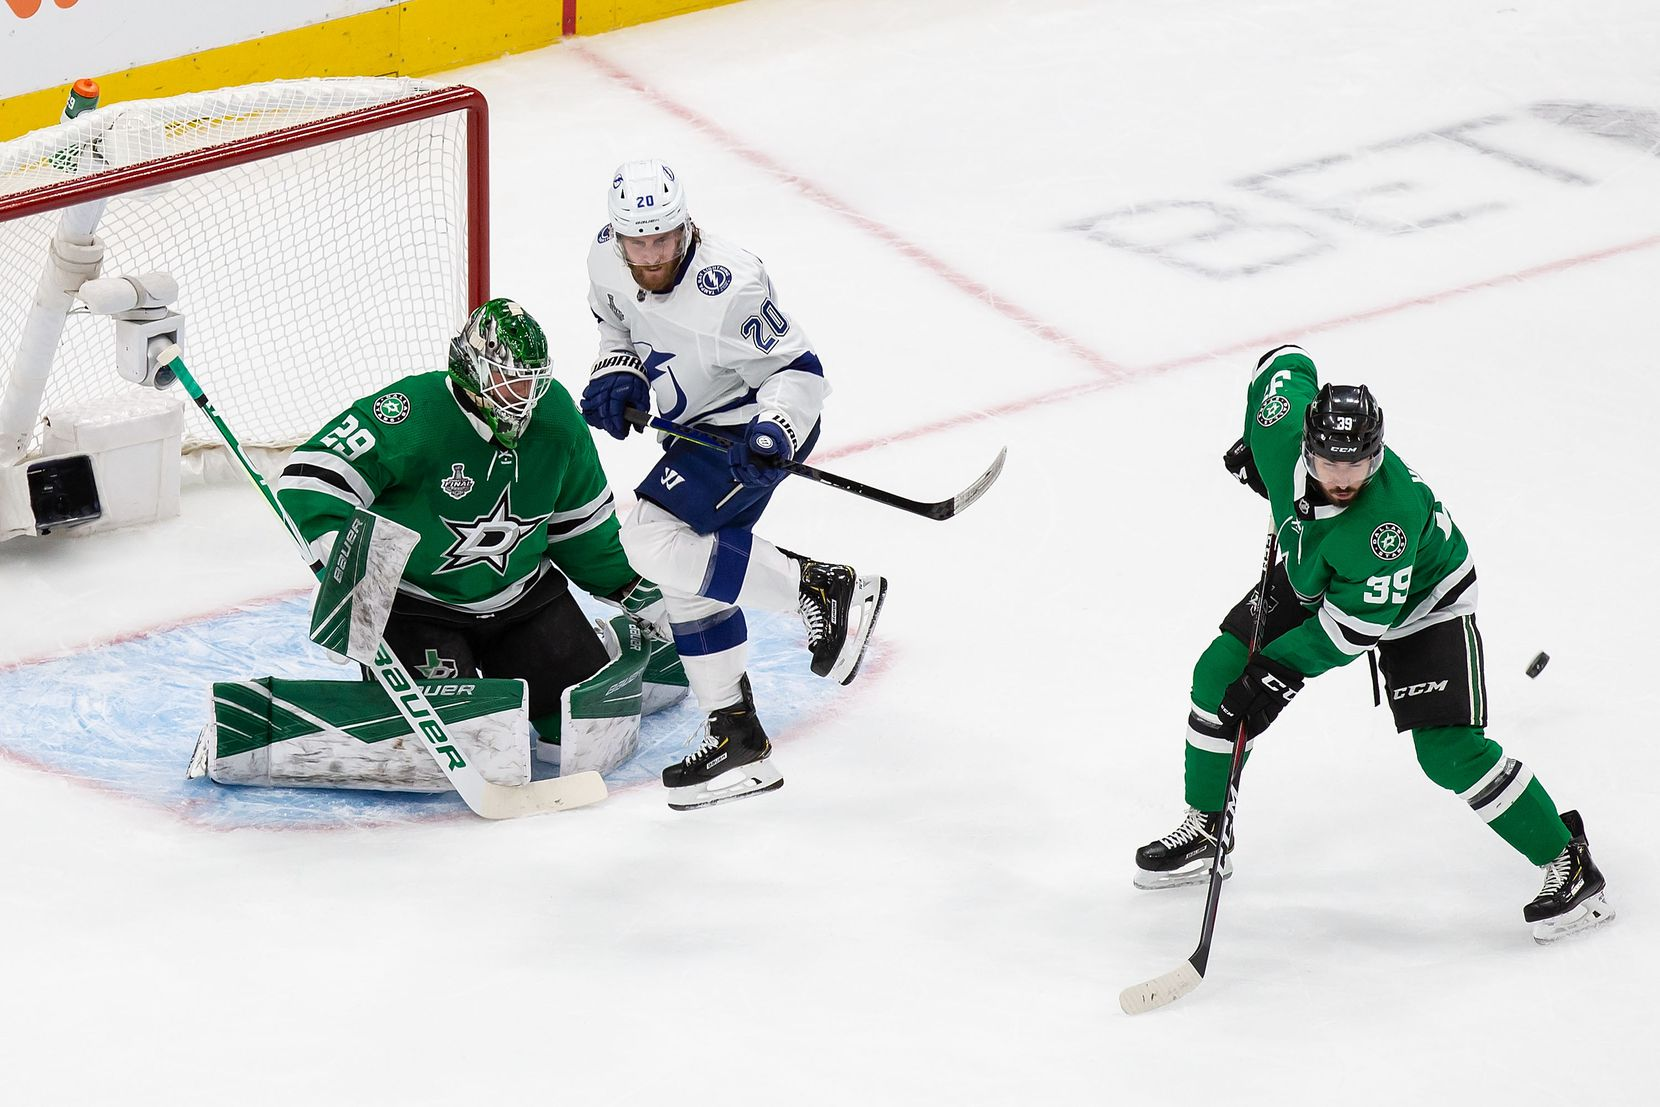 Goaltender Jake Oettinger (29) and Joel Hanley (39) of the Dallas Stars defend against Blake Coleman (20) of the Tampa Bay Lightning during Game Three of the Stanley Cup Final at Rogers Place in Edmonton, Alberta, Canada on Wednesday, September 23, 2020. (Codie McLachlan/Special Contributor)